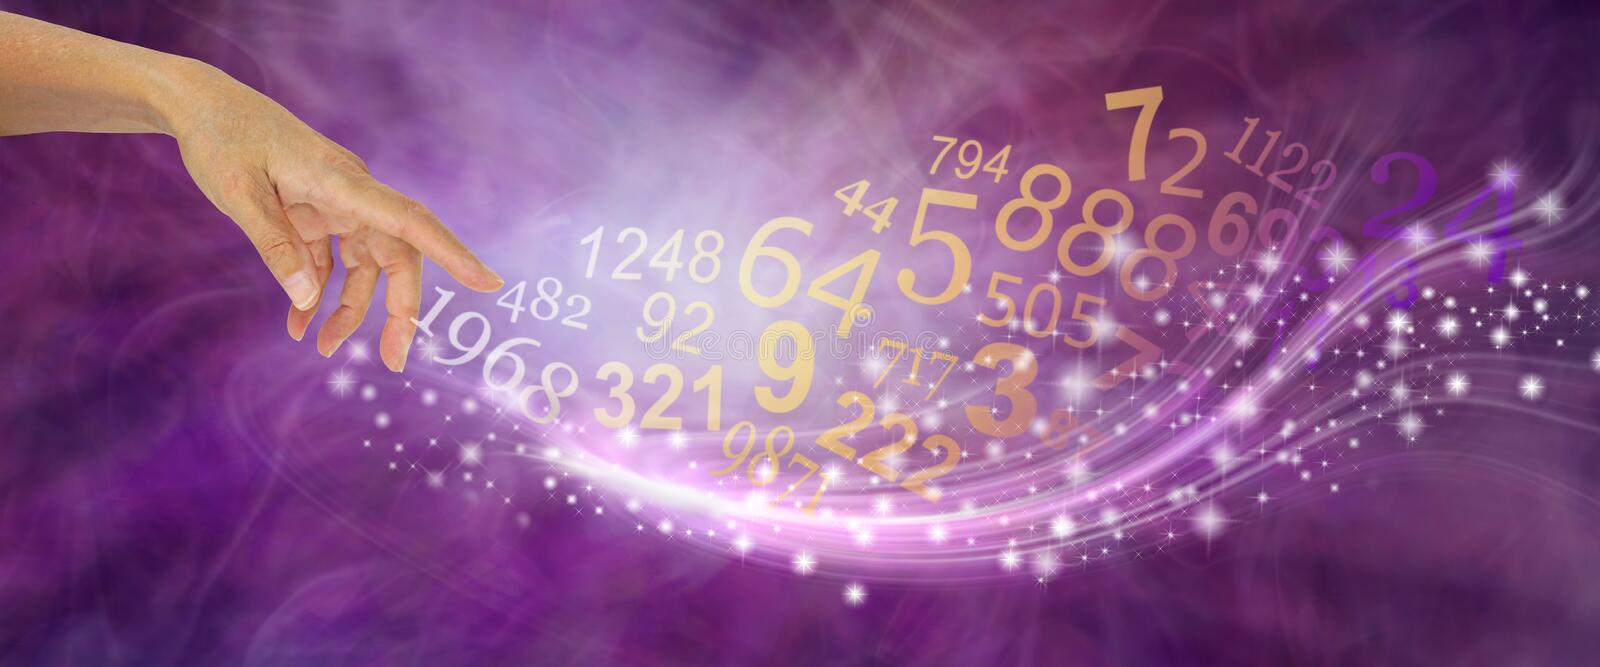 Numerology is far more than just NUMBERS. Female hand appearing to create a swish of sparkles and a flow of random numbers on a pink purple energy formation stock photo